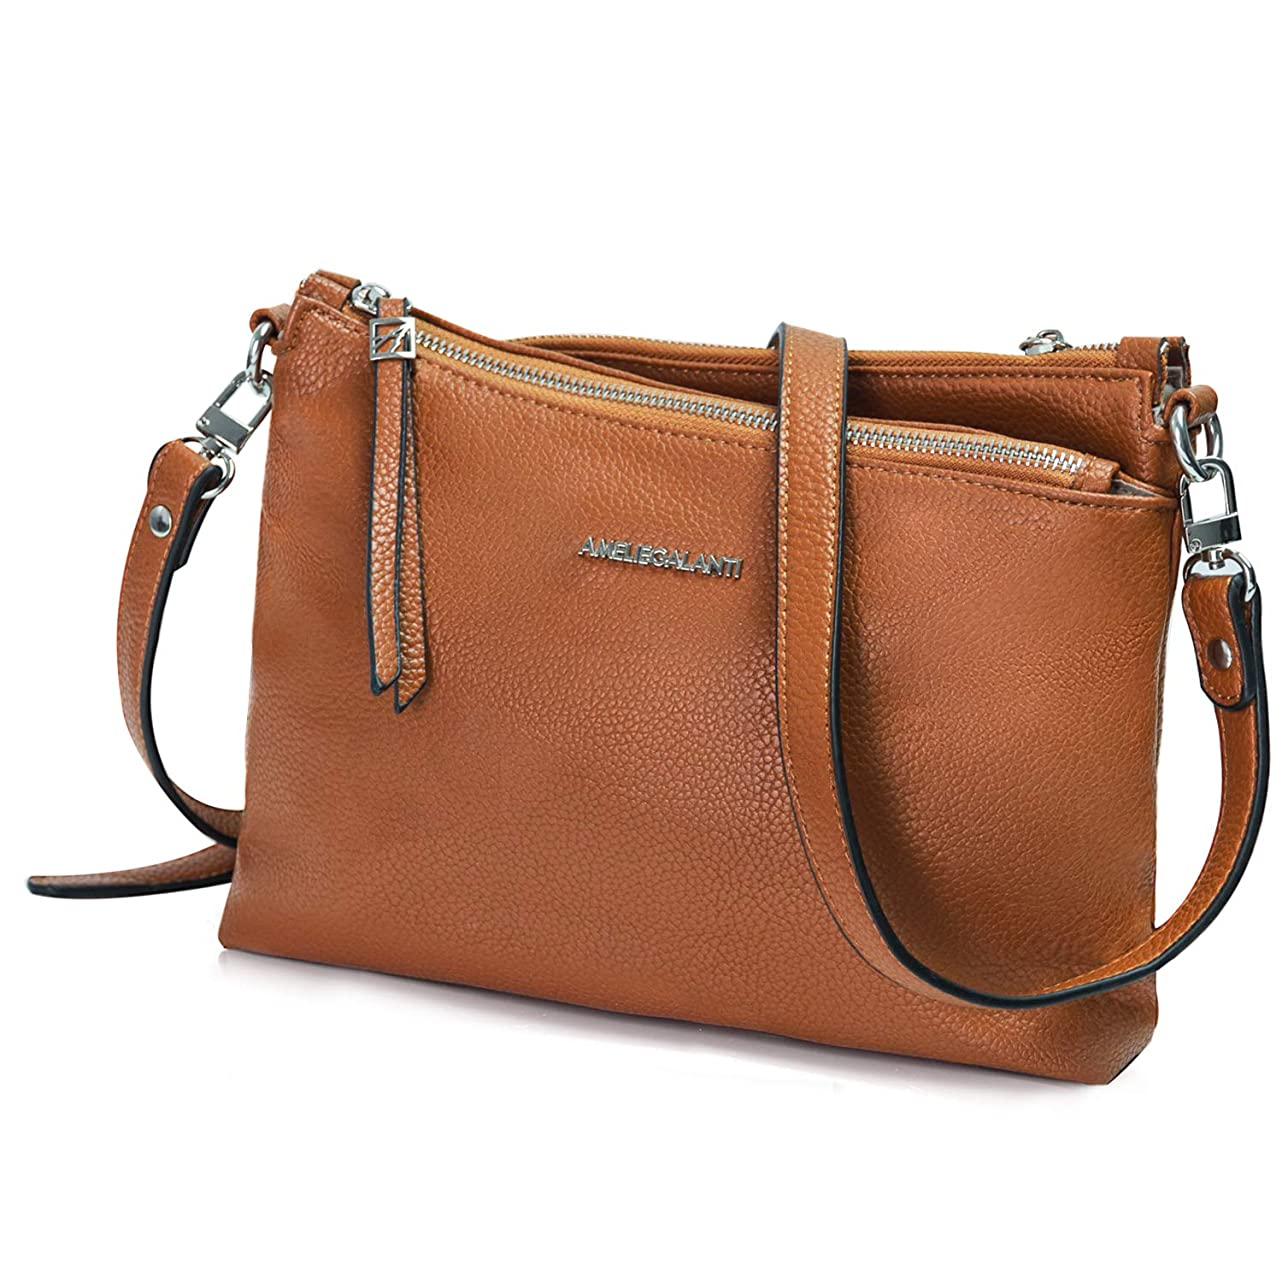 Crossbody Bags for Women, Purses and Handbags PU Leather Shoulder Bag Satchel with Adjustable Strap and Multi Pockets riw071423772155